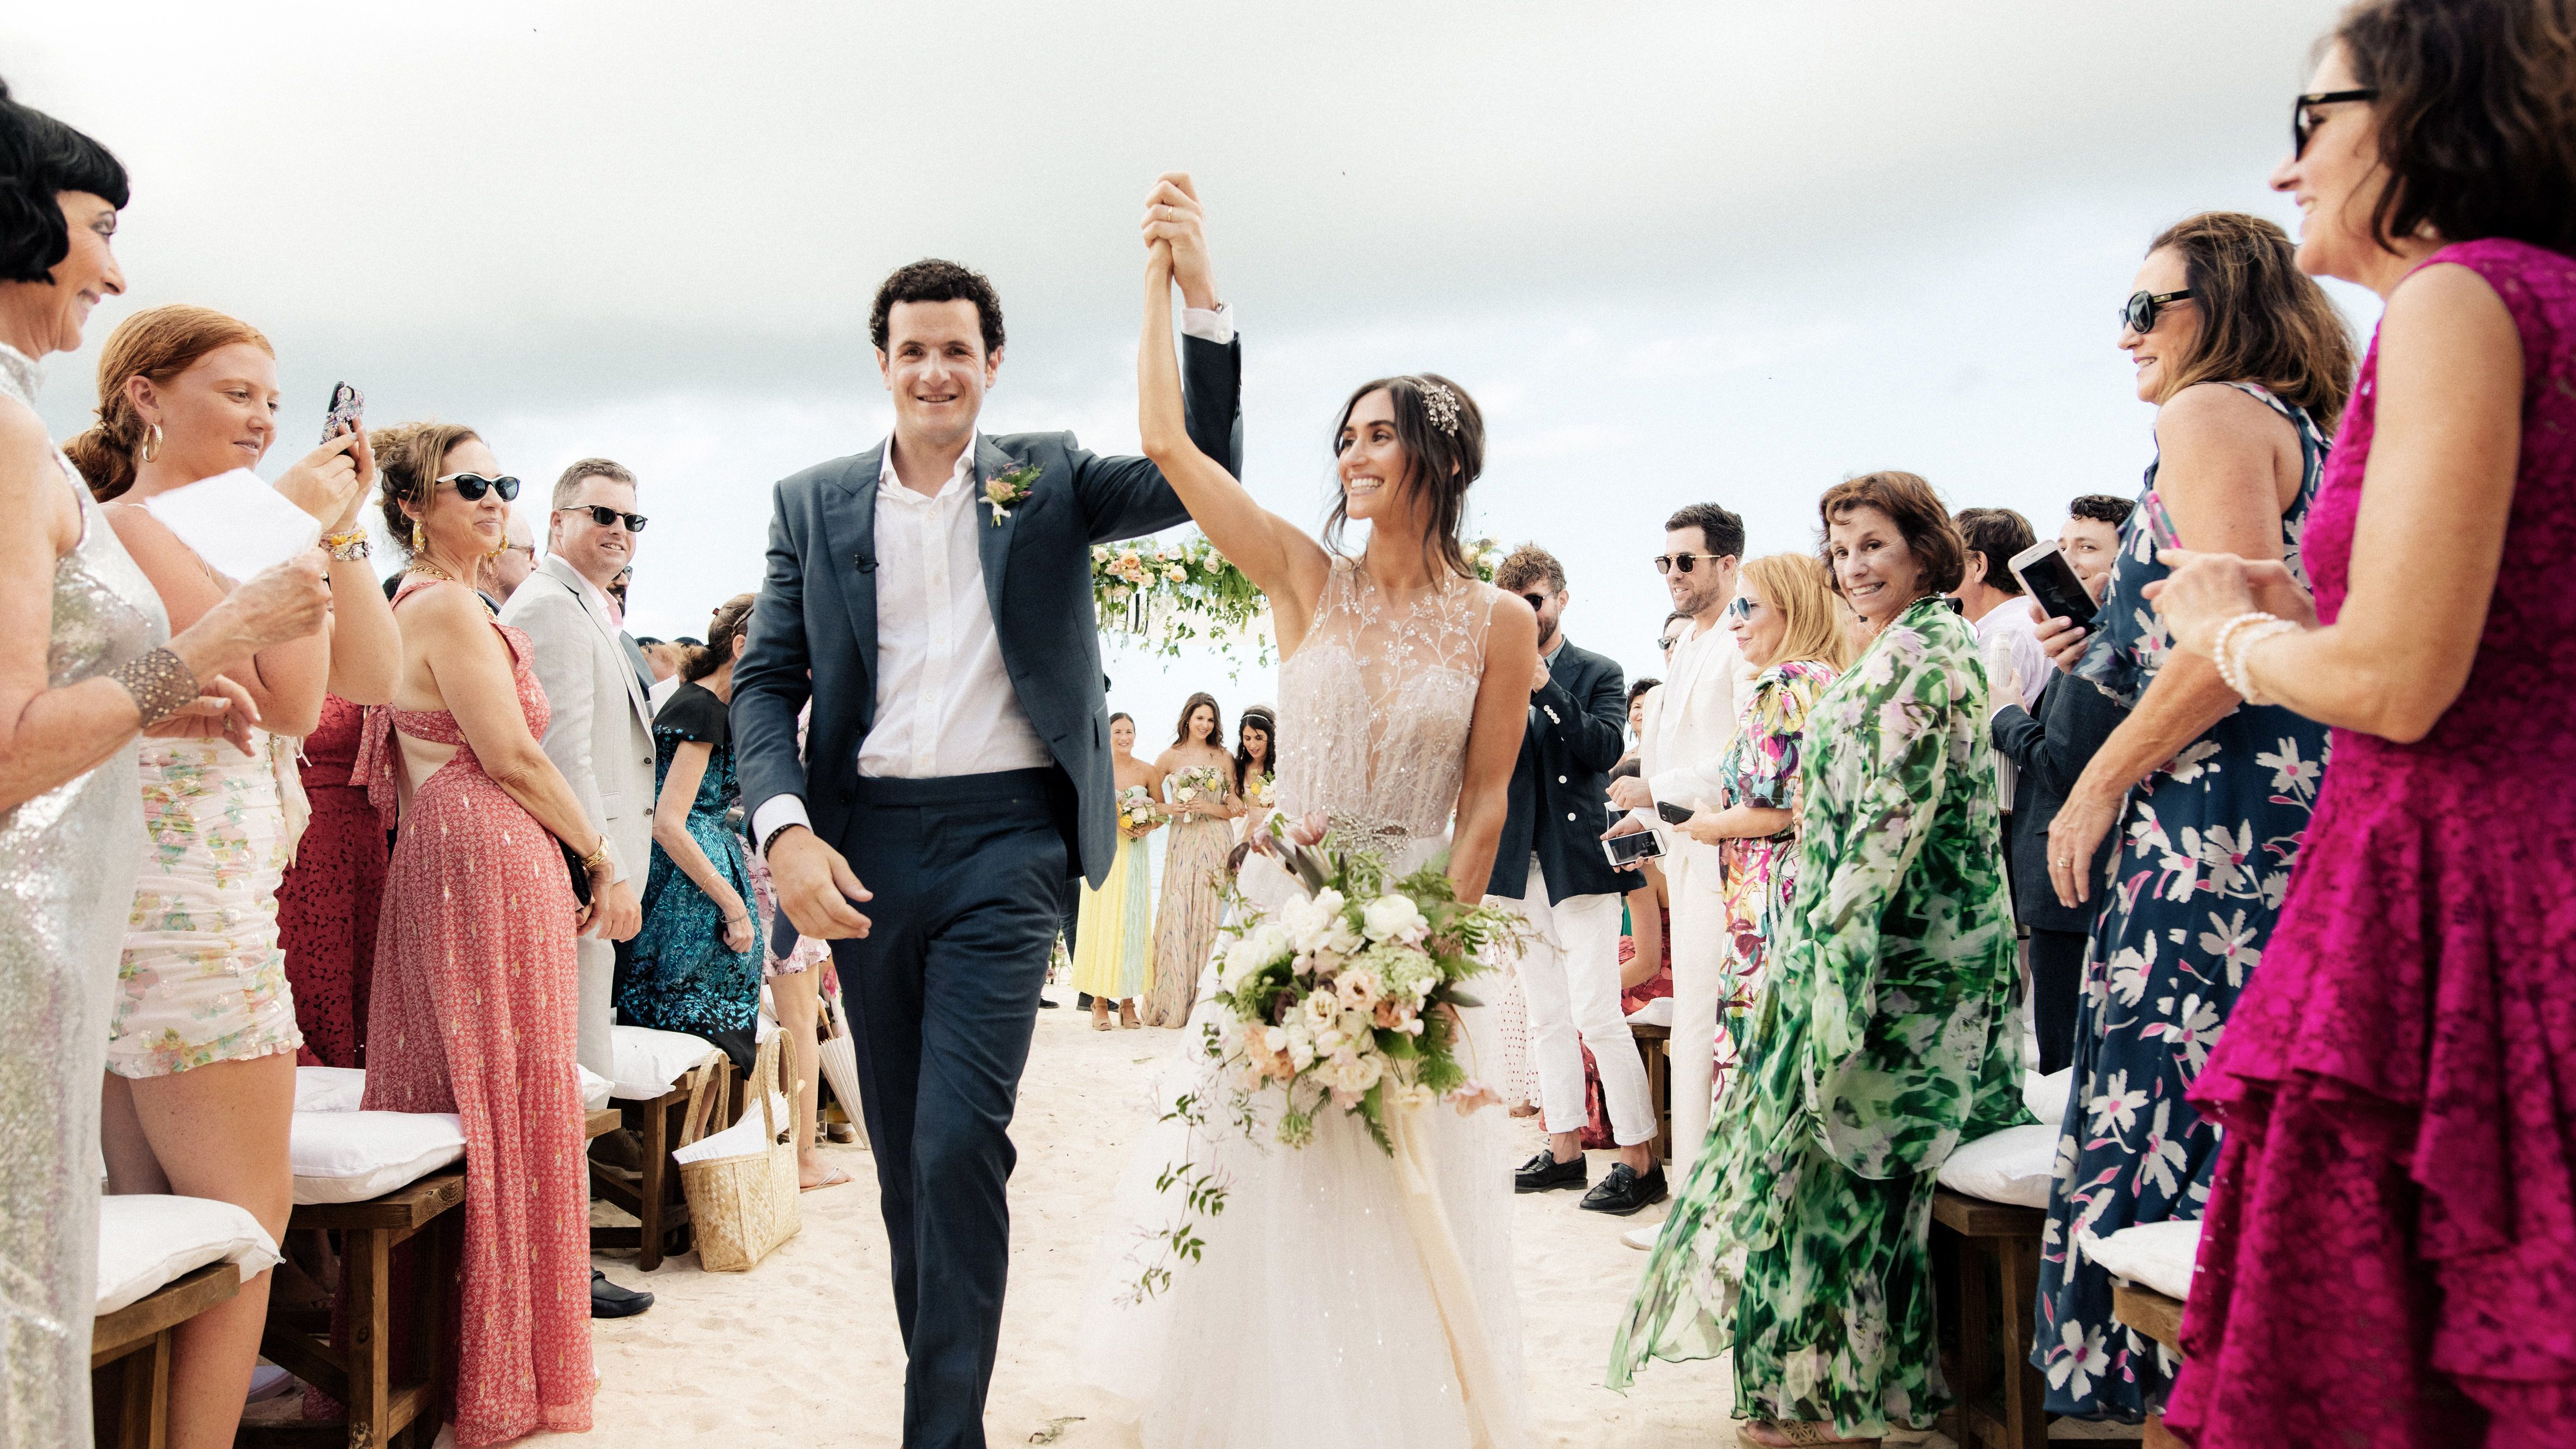 The 27 Best Wedding Photo Albums Of 2020